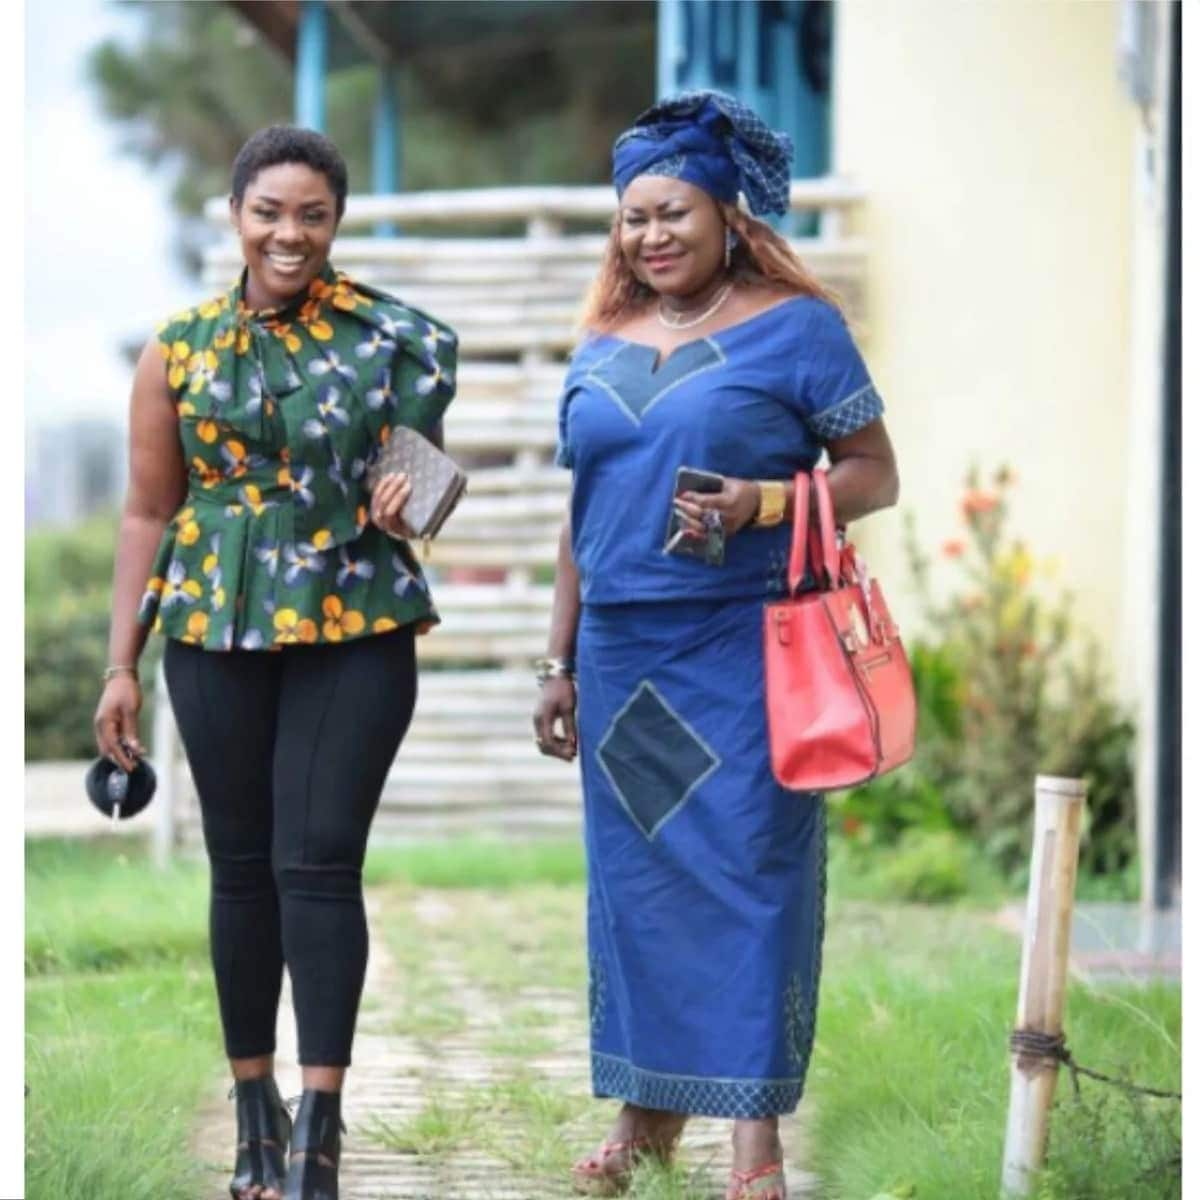 Kumawood actresses join in on the 'One Corner' dance frenzy